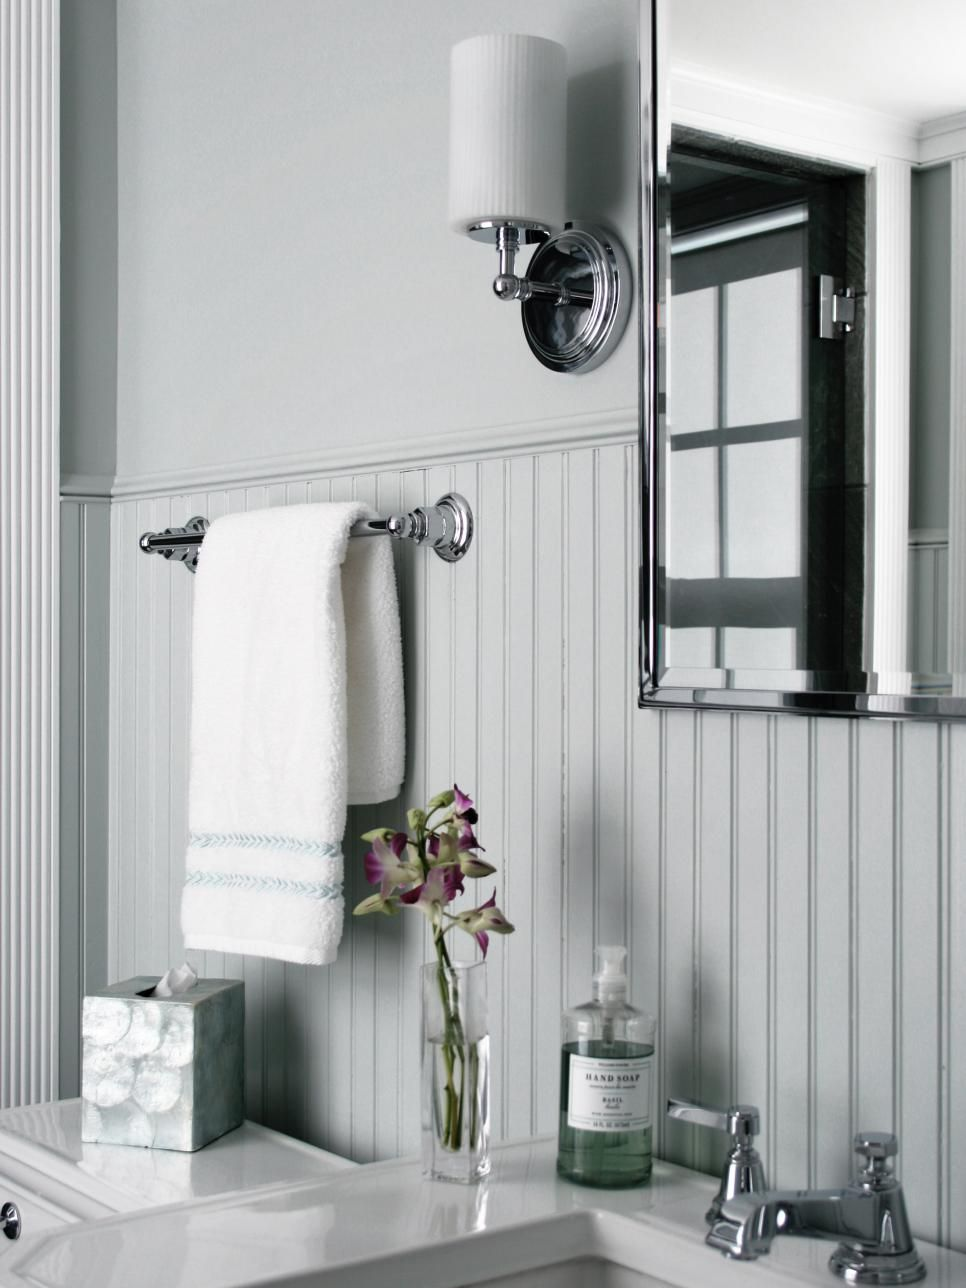 The beadboard wainscoting adds texture and durability to this